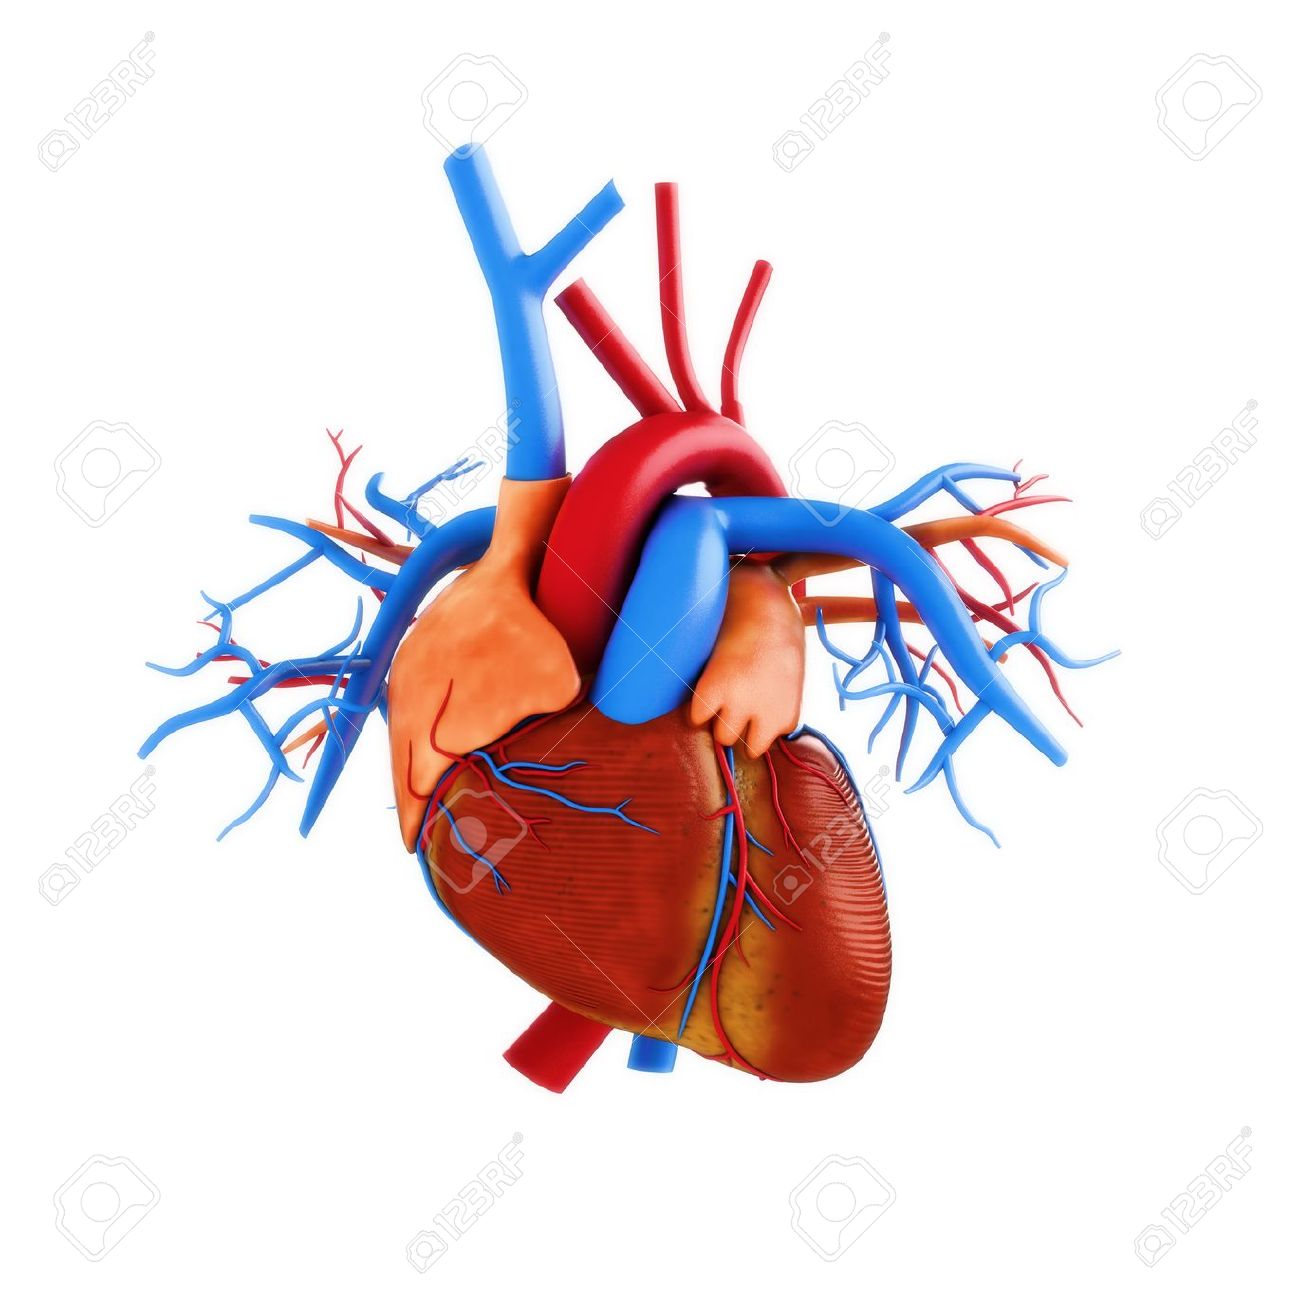 Human Heart Anatomy Illustration On A White Background Part Stock